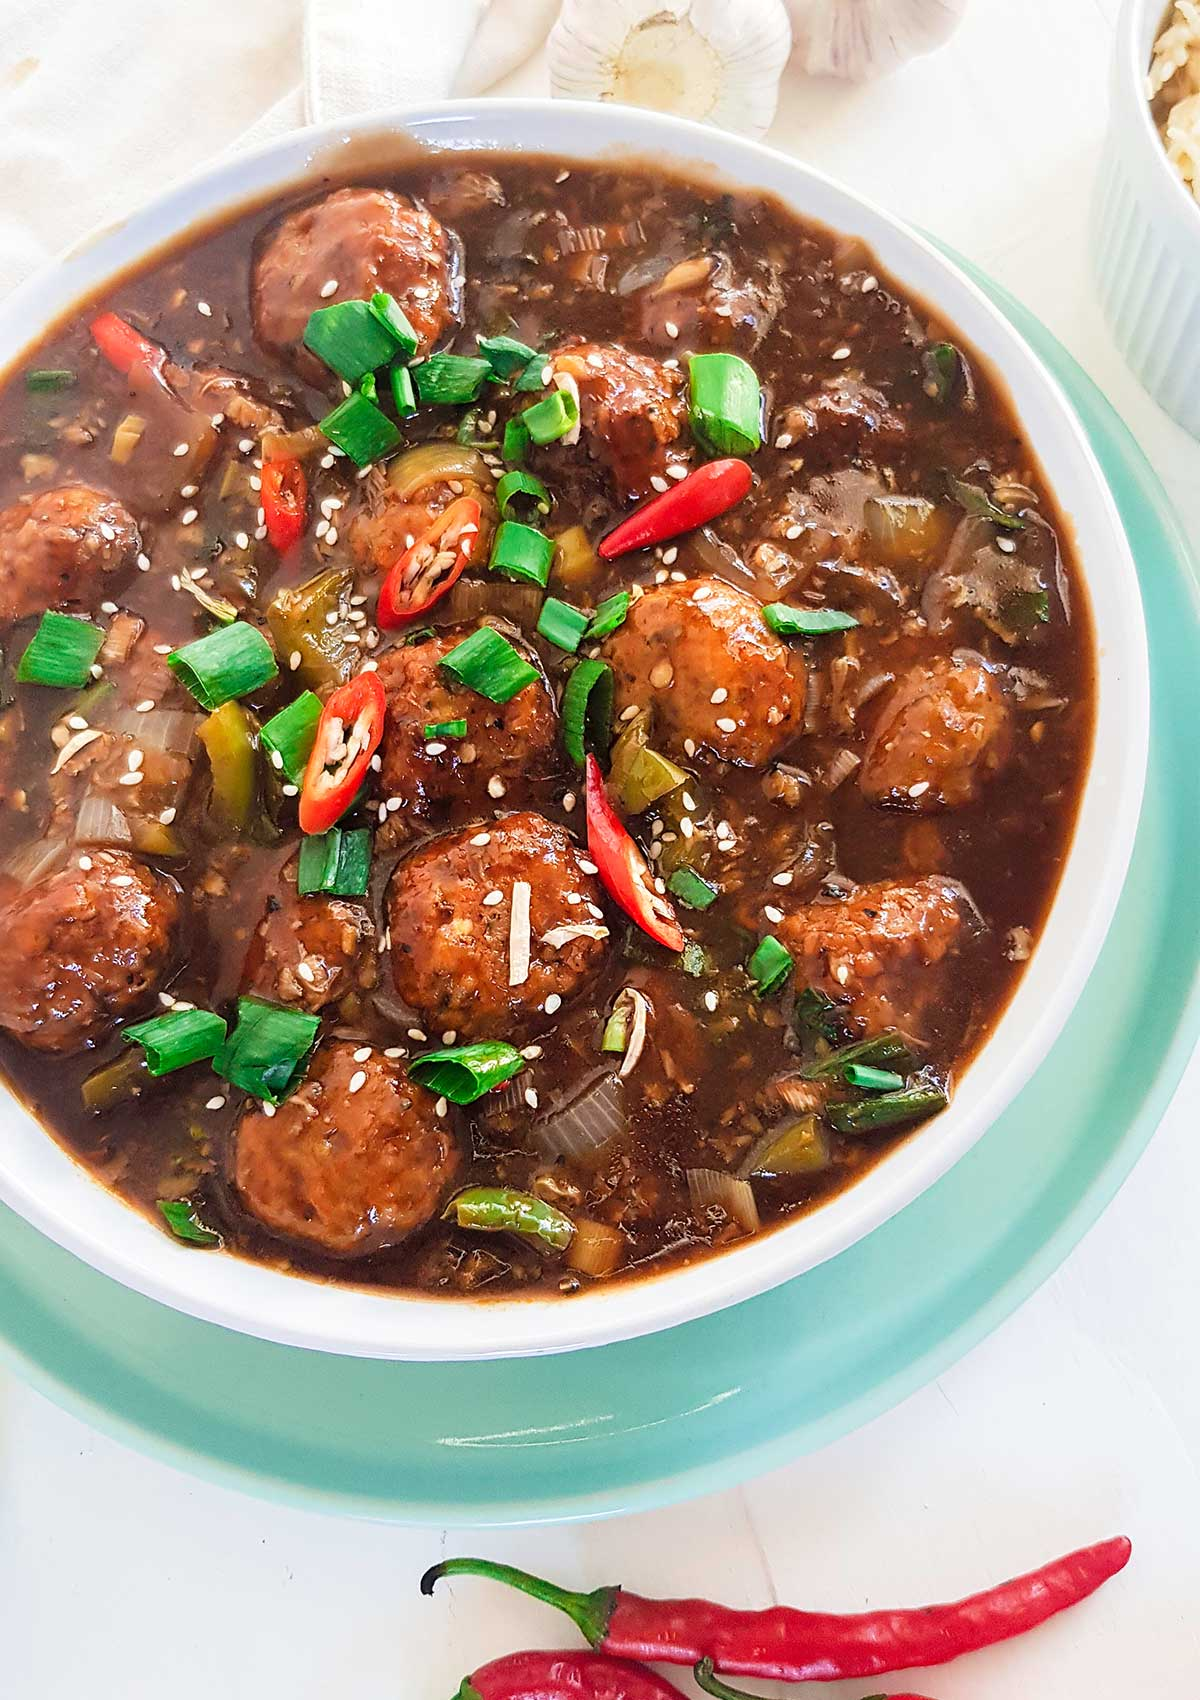 Manchurian served in a white bowl